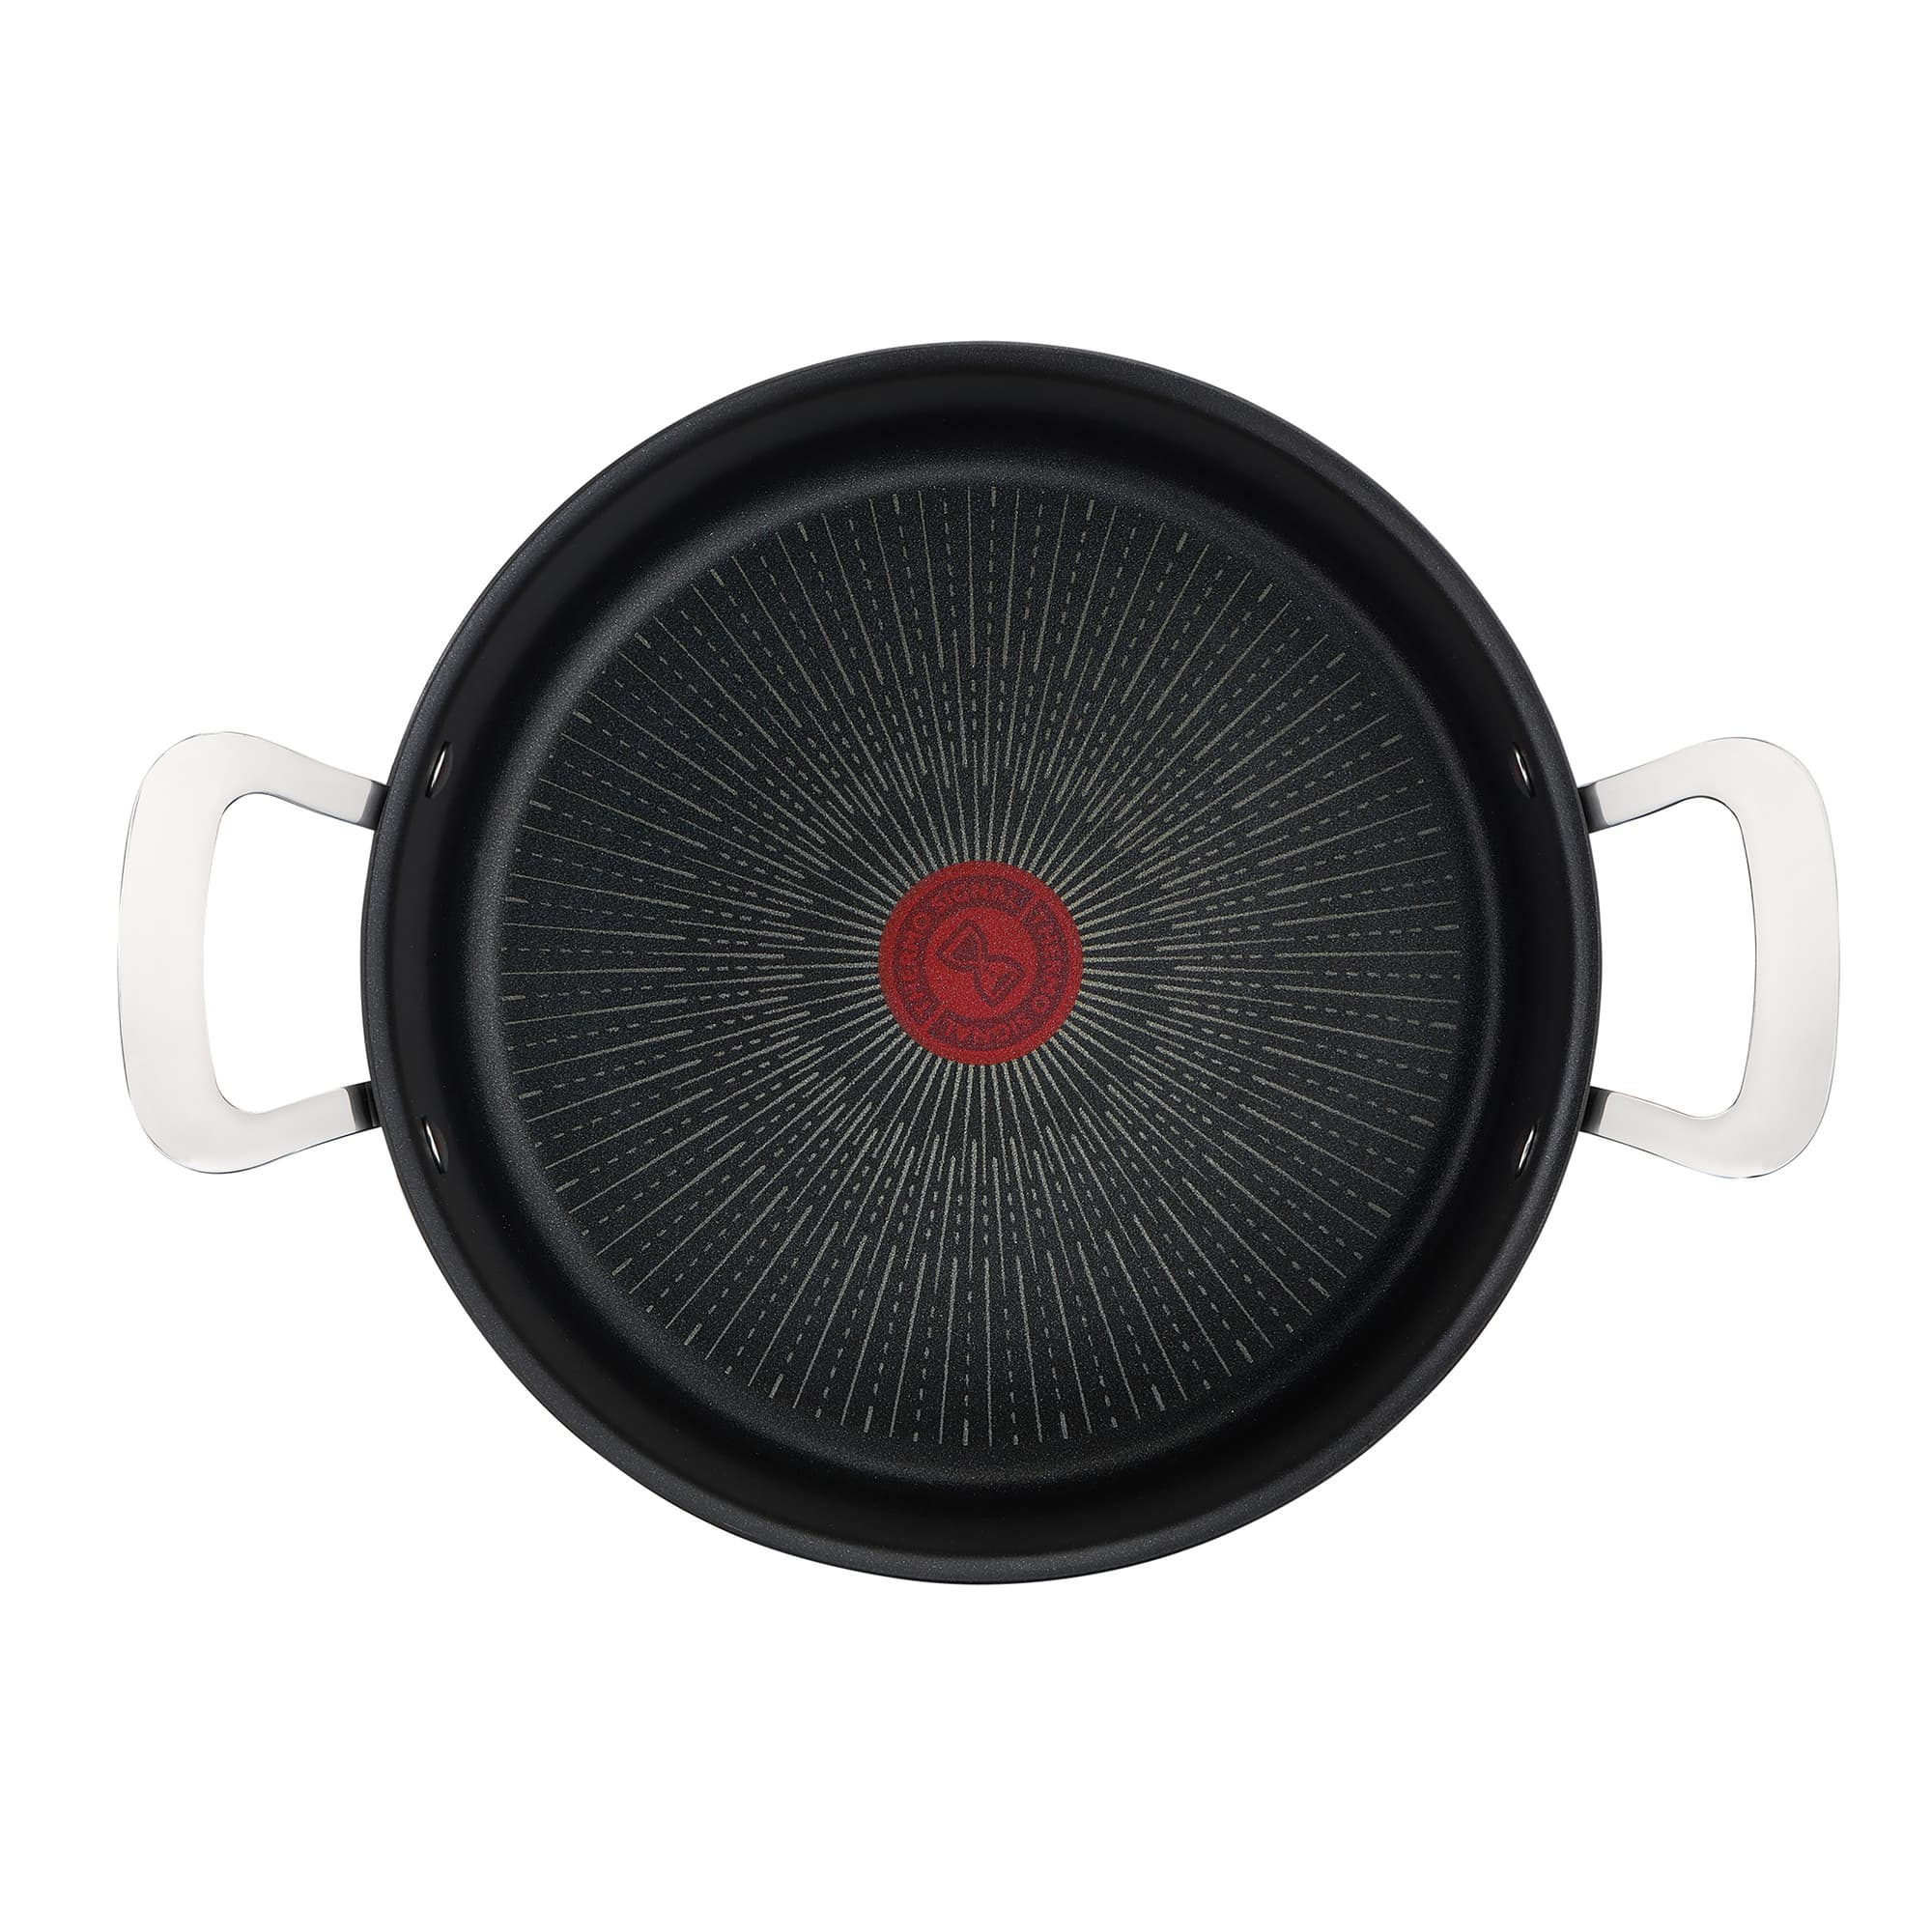 Tefal Unlimited Premium Induction Stewpot w/ Lid 24cm - 5L image #4